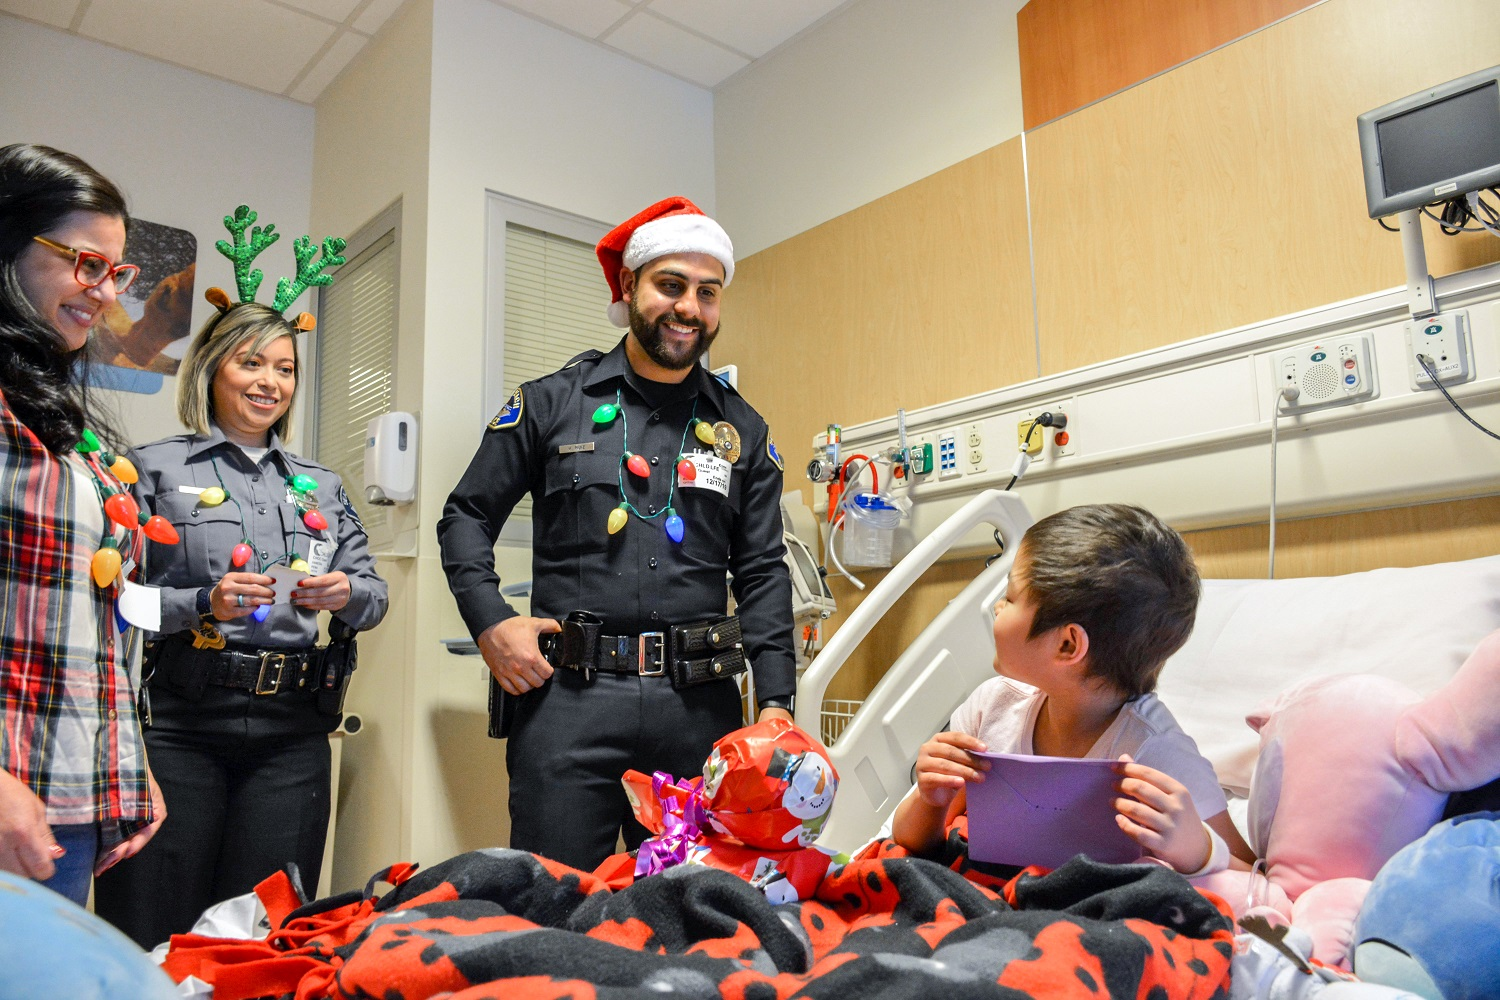 Police officers and a volunteer smile at a child opening a present in a hospital room